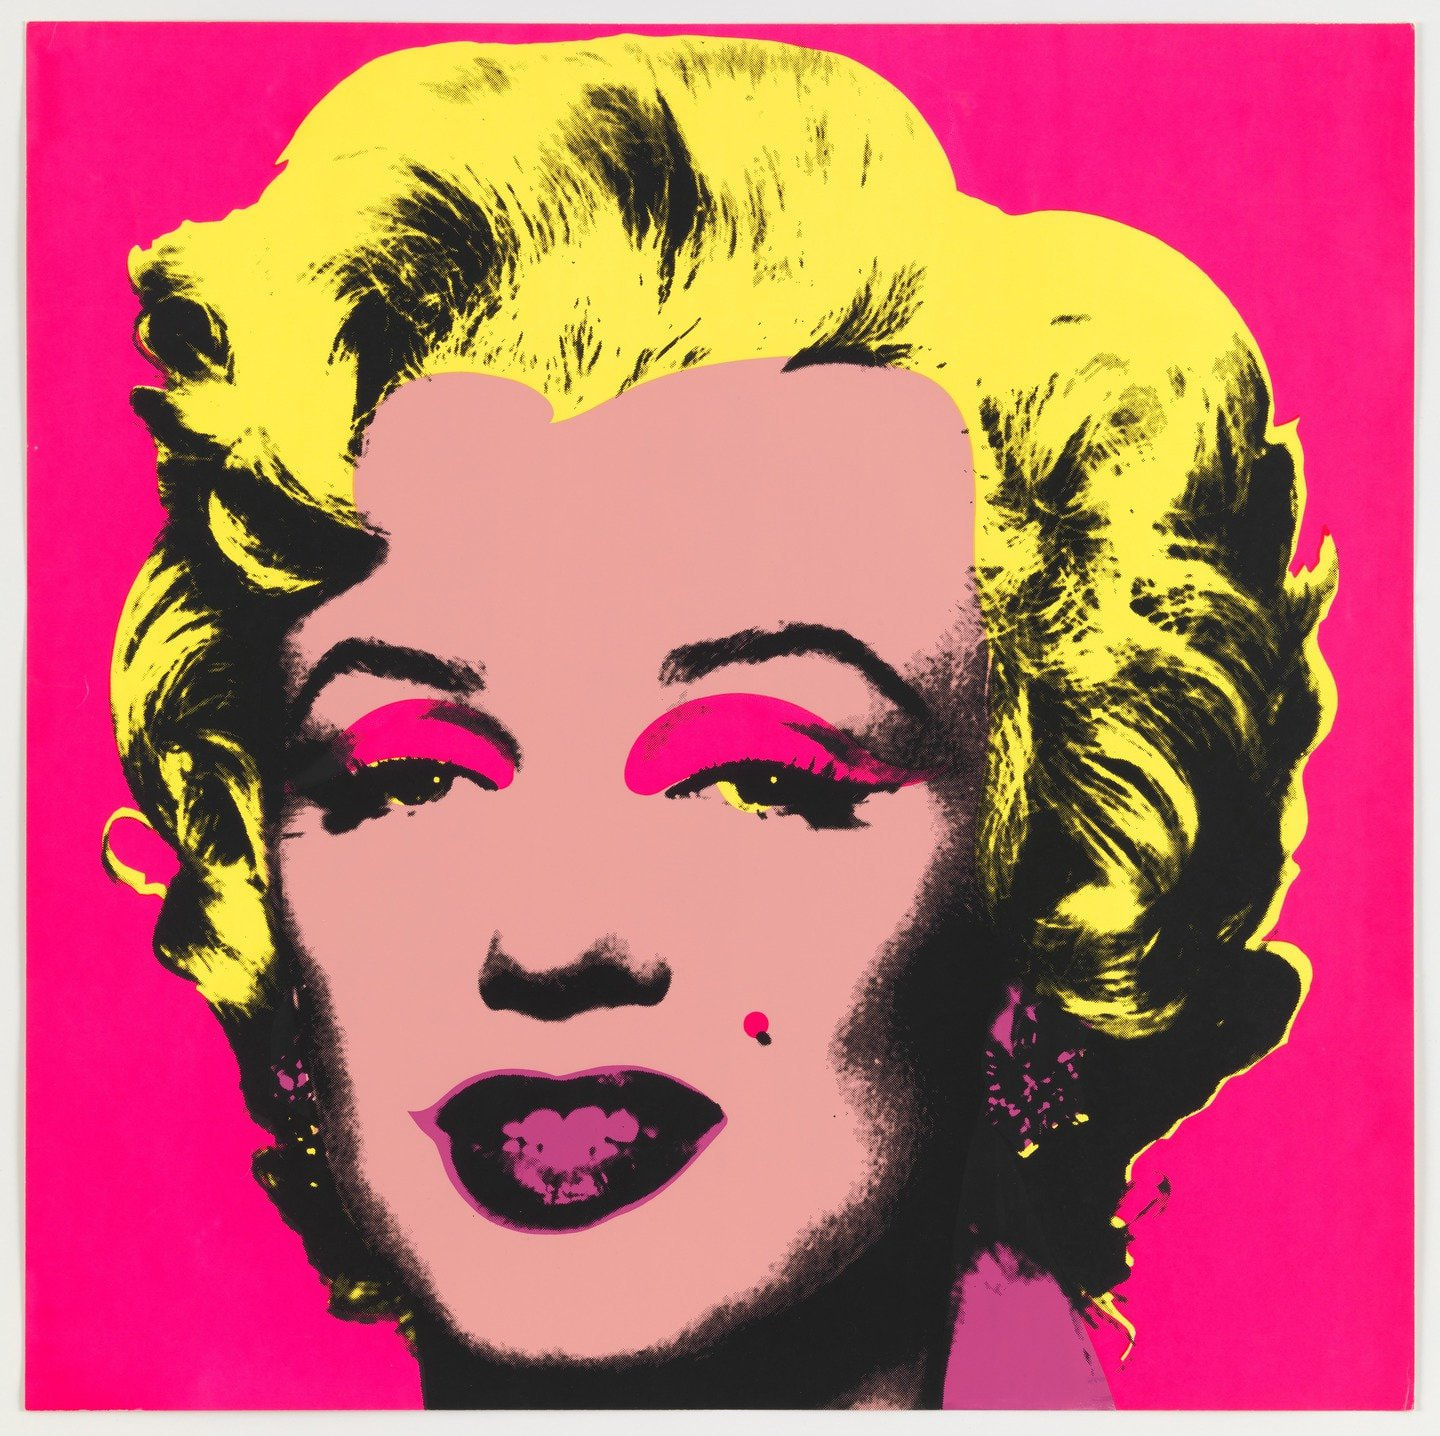 04. Andy Warhol, Untitled from Marilyn Monroe